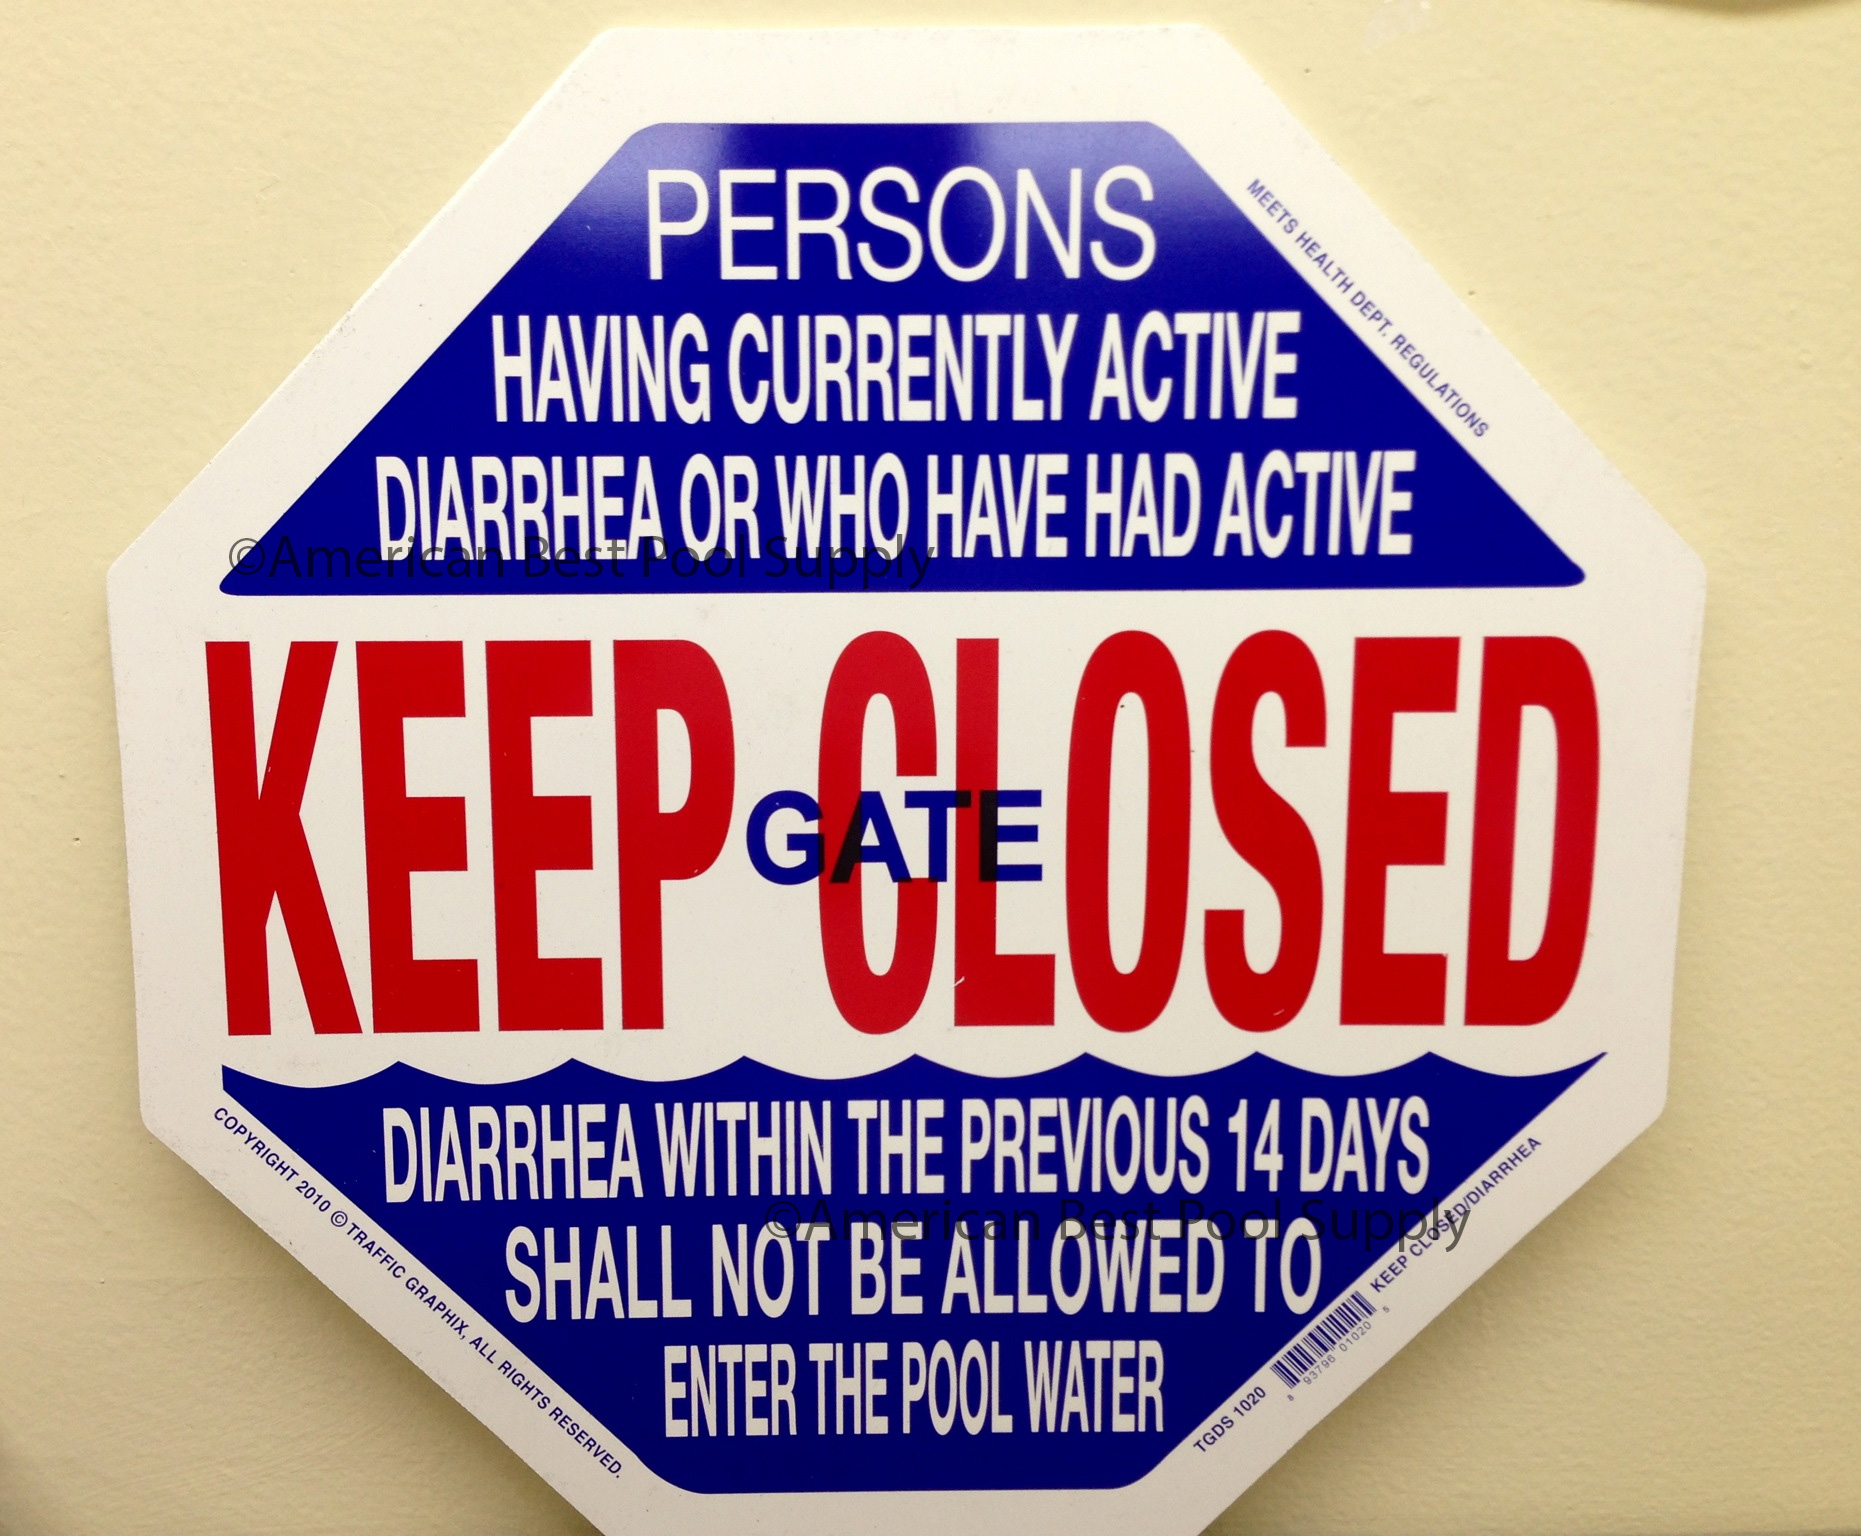 California Water Heater Code Keep Gate Closed & Diarrhea Sign For Californ